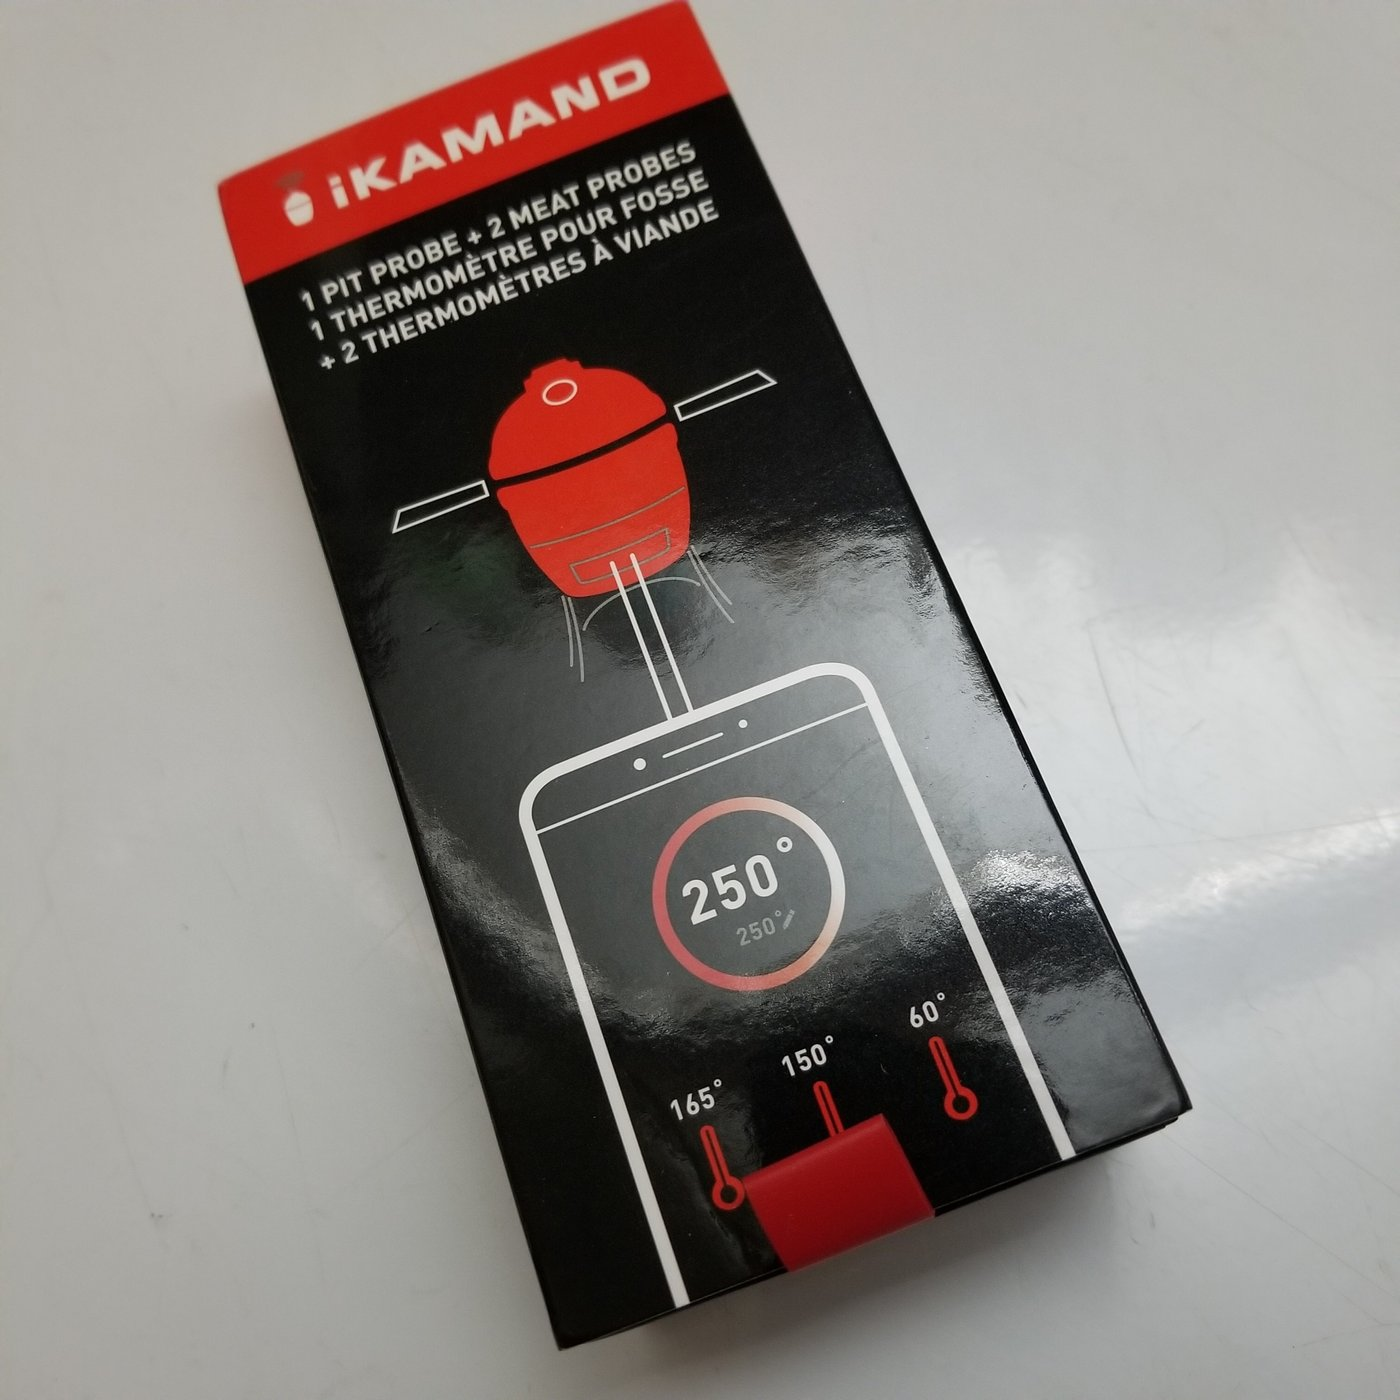 Kamado Joe iKamand Replacement Probes - KJ-IKamandPK - Smoker Guru